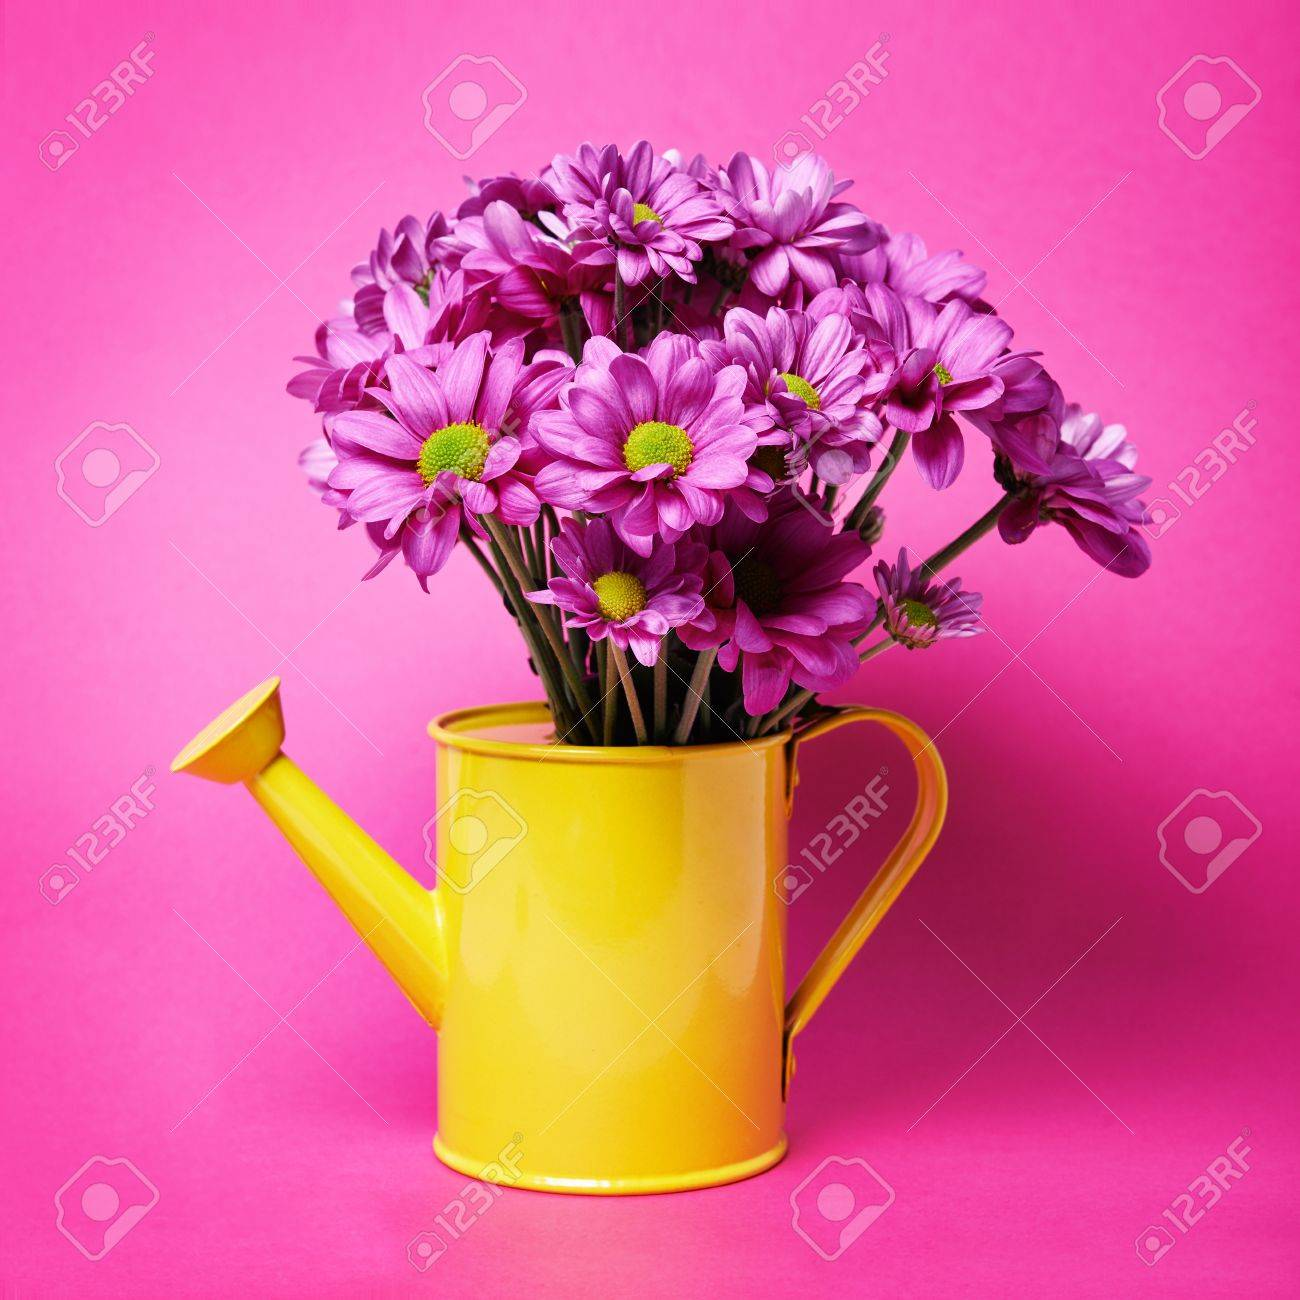 Bright Lilac Flowers In Yellow Can On Pink Background Stock Photo